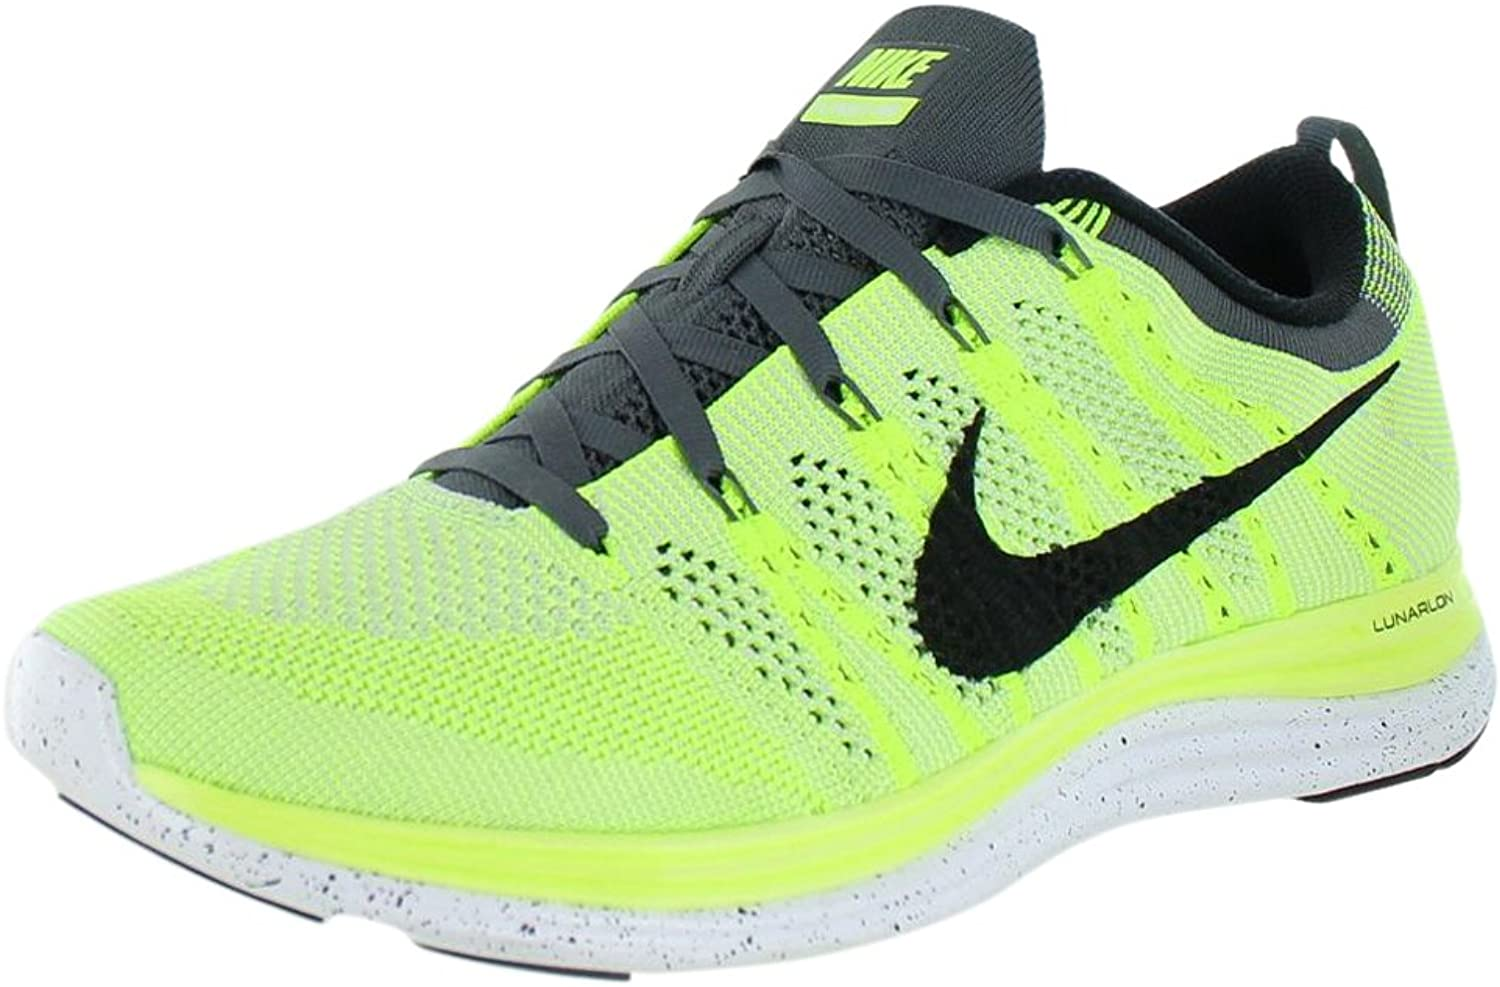 Nike Flyknit ONE  - 554887-705 B00CES6B7C  | Elegante Und Stabile Verpackung